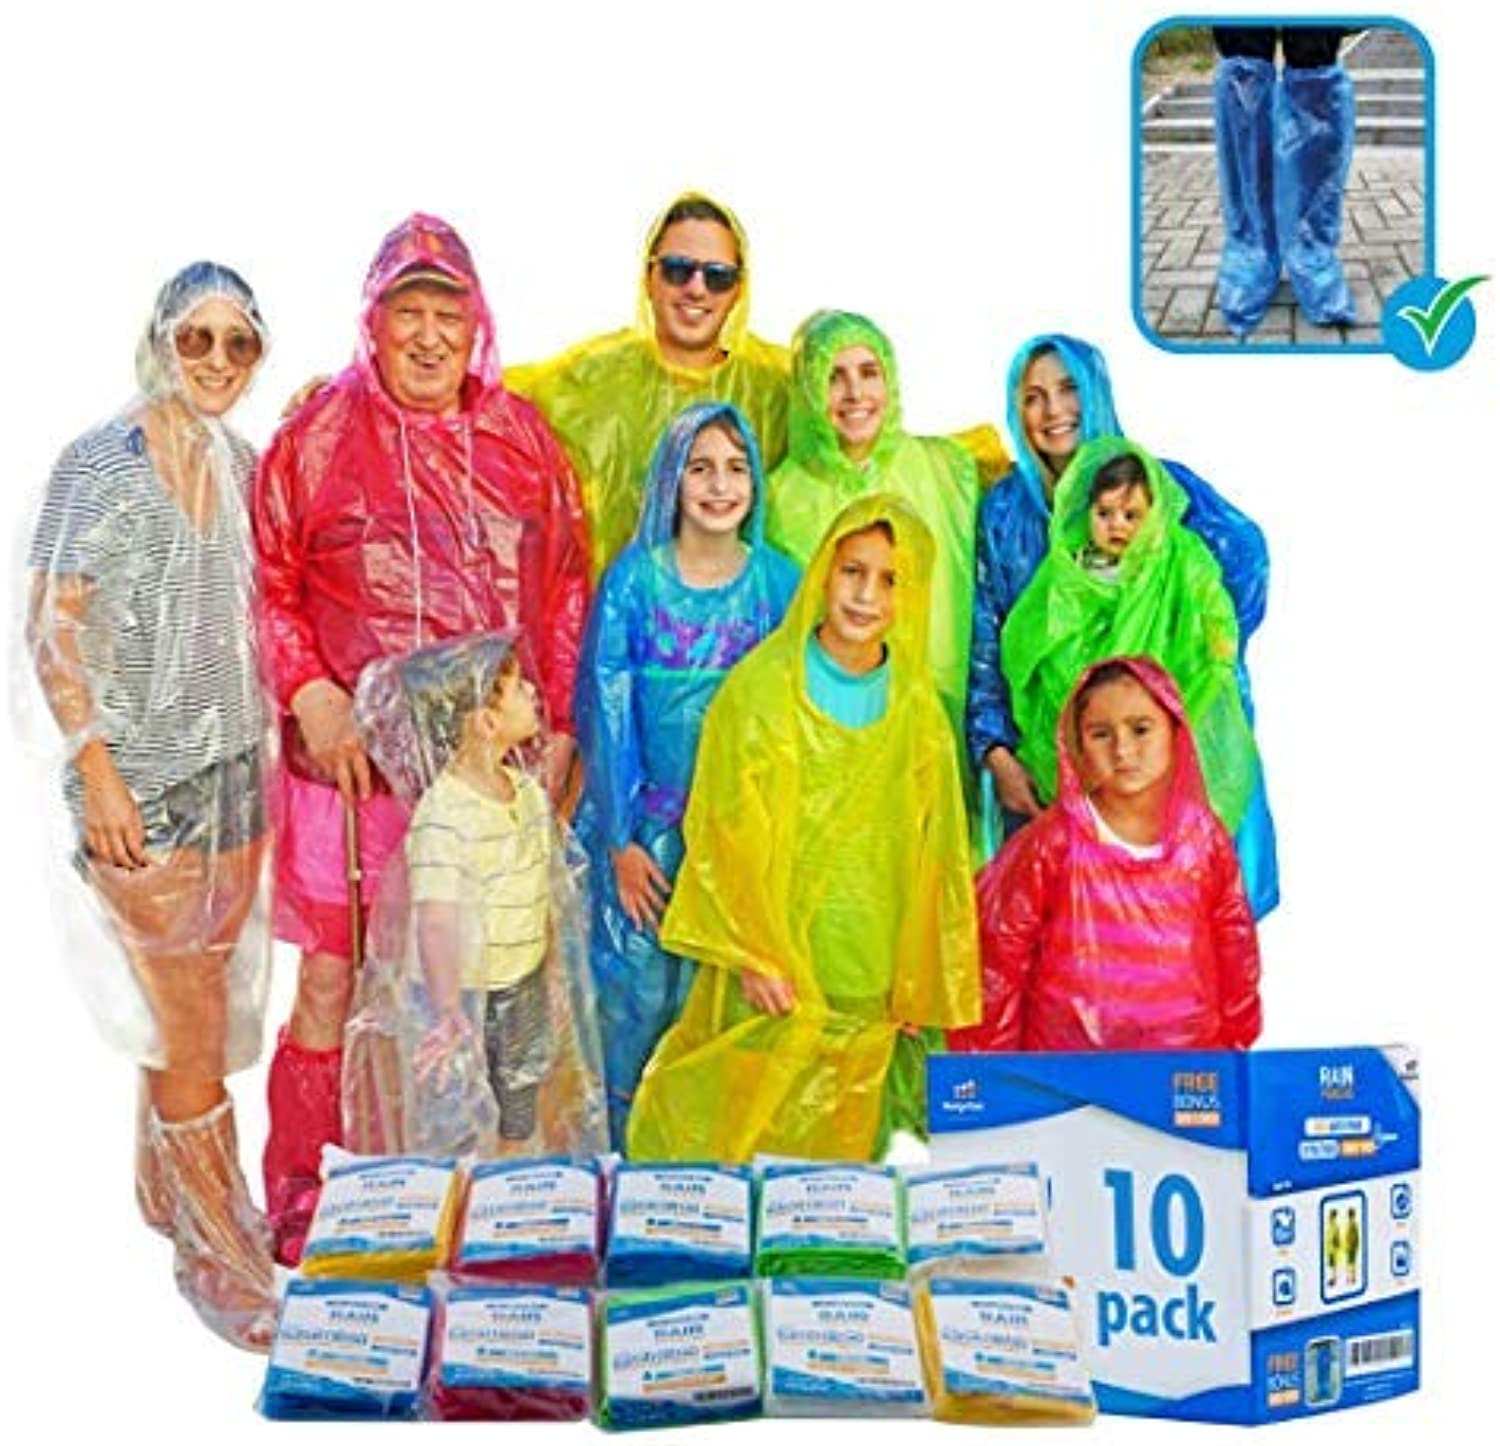 Emergency Family Rain Ponchos Extra Thick  4 and 10 Pack Disposable Plastic Raincoat Bundled with shoes Covers for Adults and Kids  Assorted colors and 100% Waterproof Rain Gear (4,10 Pack)